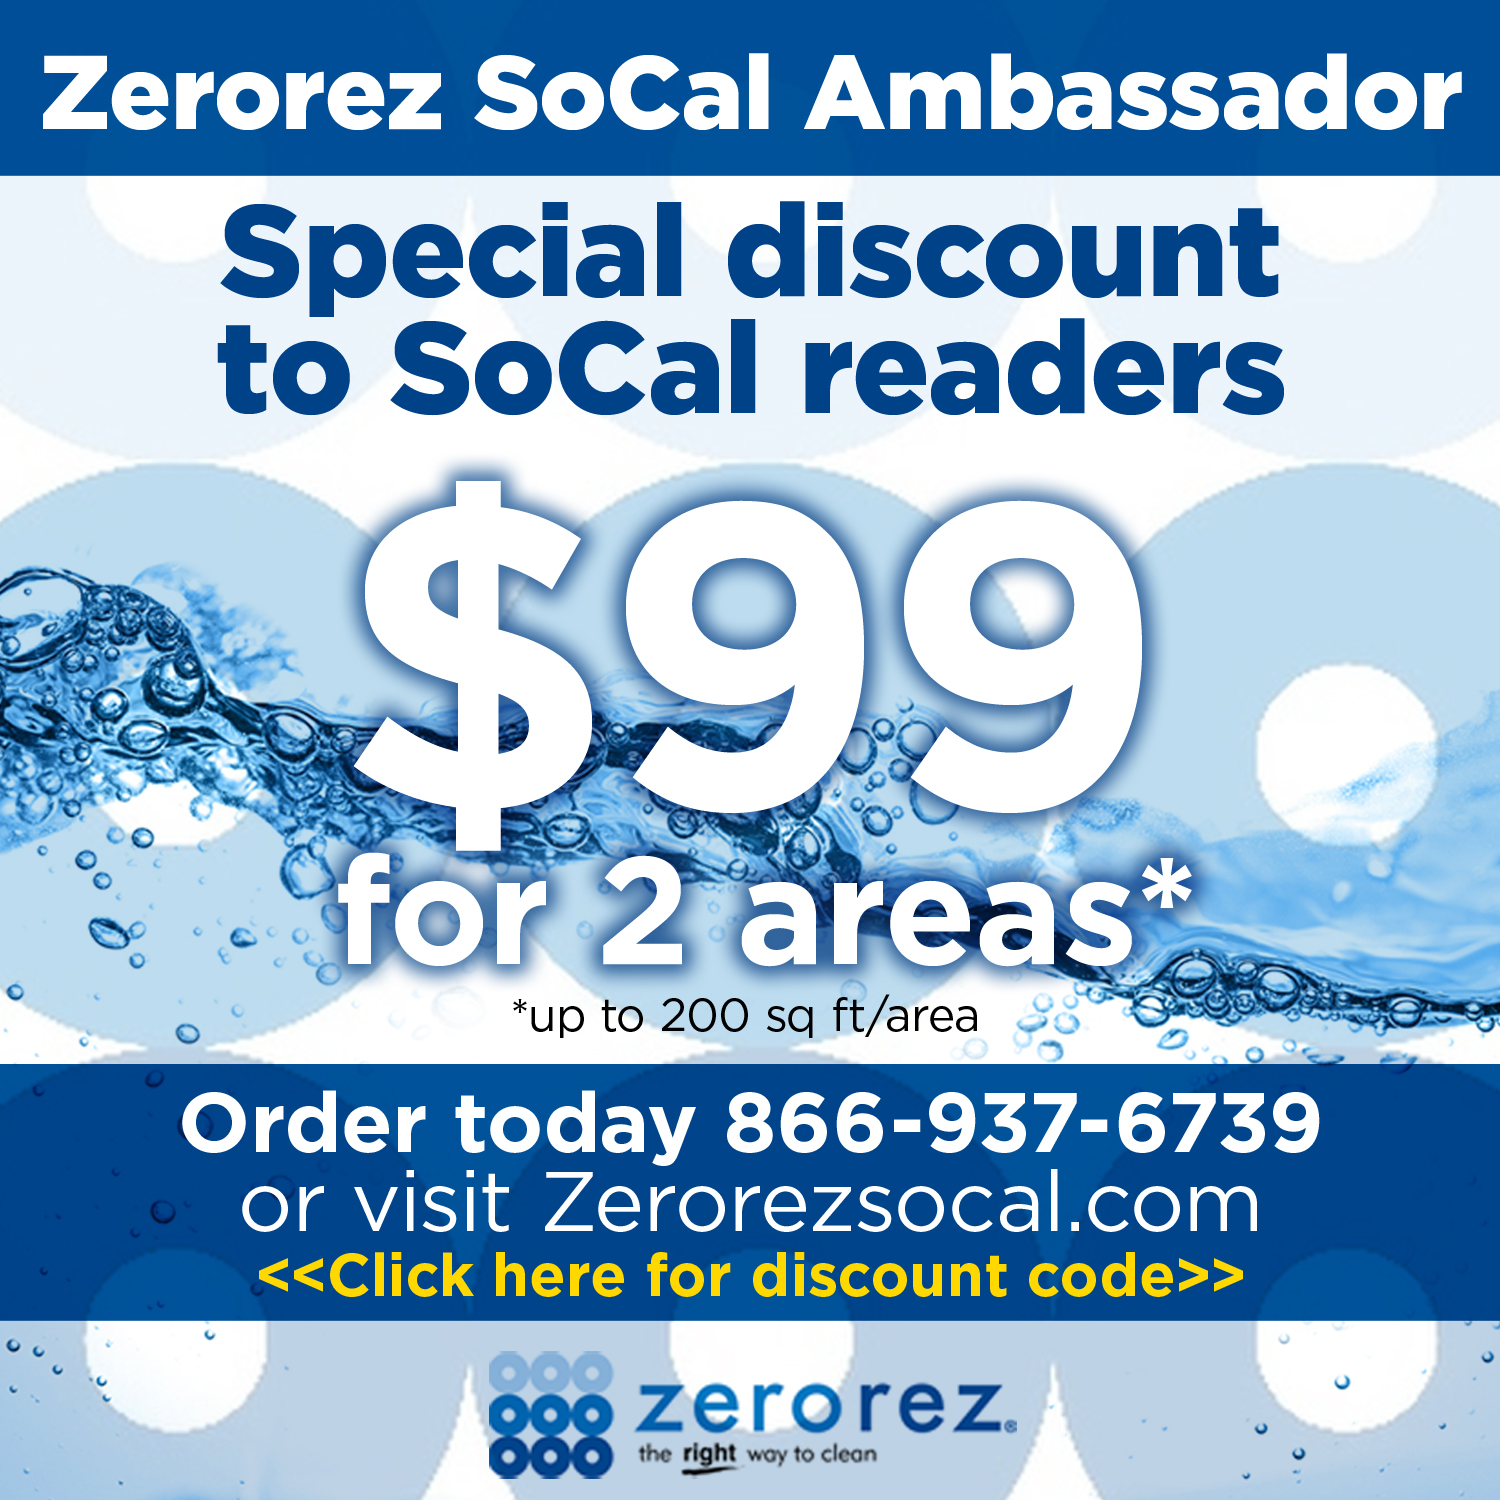 Zerorez SoCal and The Five Second Rule